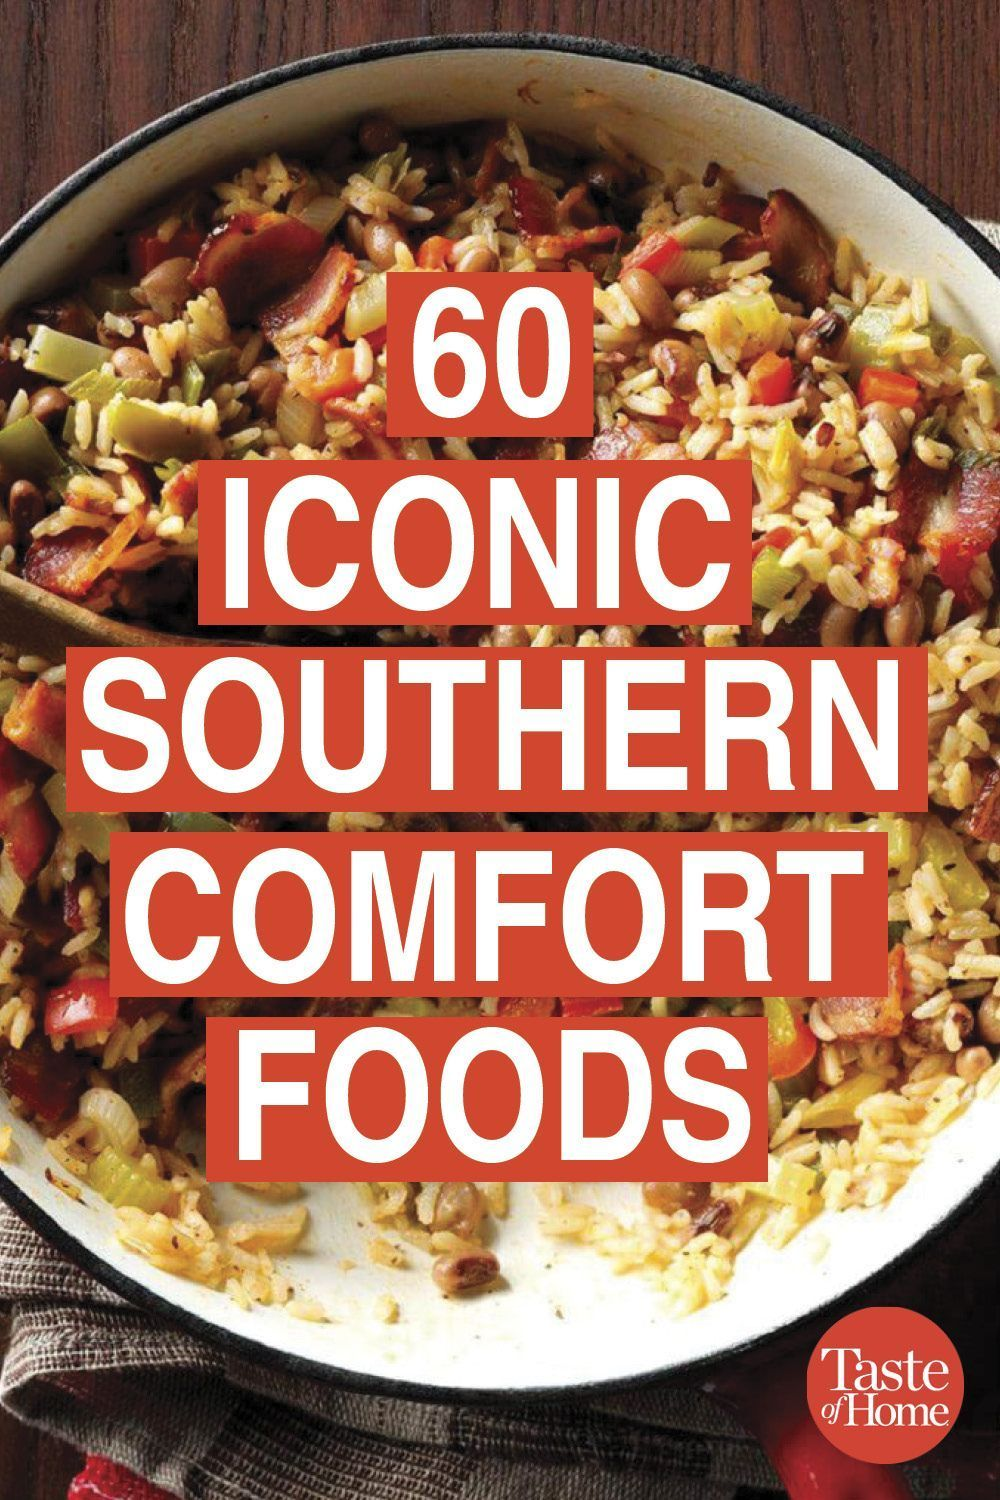 60 Iconic Southern Comfort Foods Good ones #southernrecipes